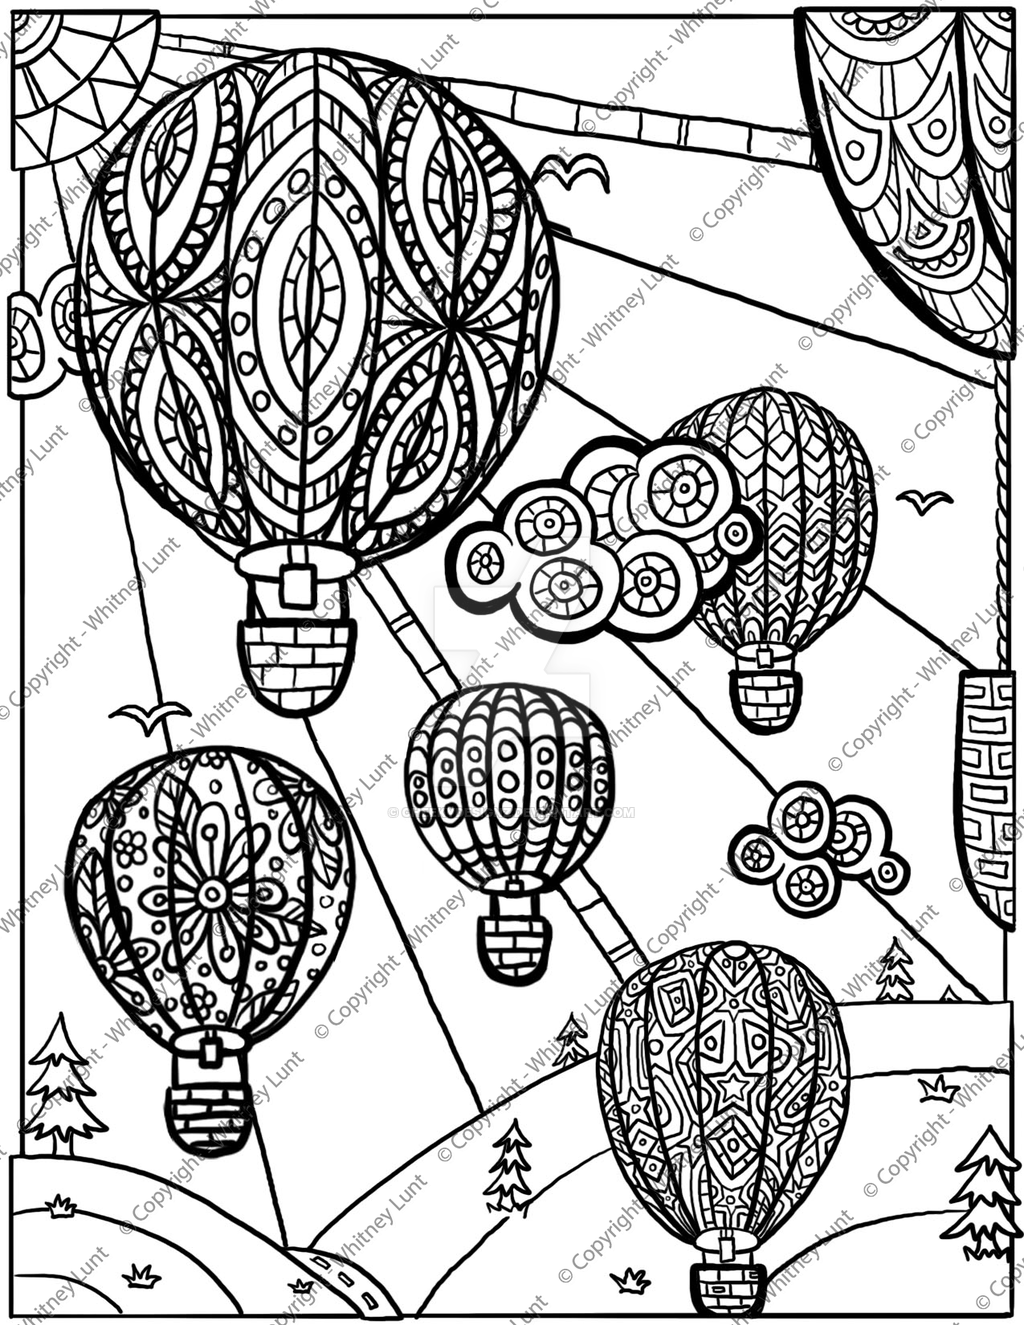 1024x1325 Cozy Inspiration Hot Air Balloon Coloring Page